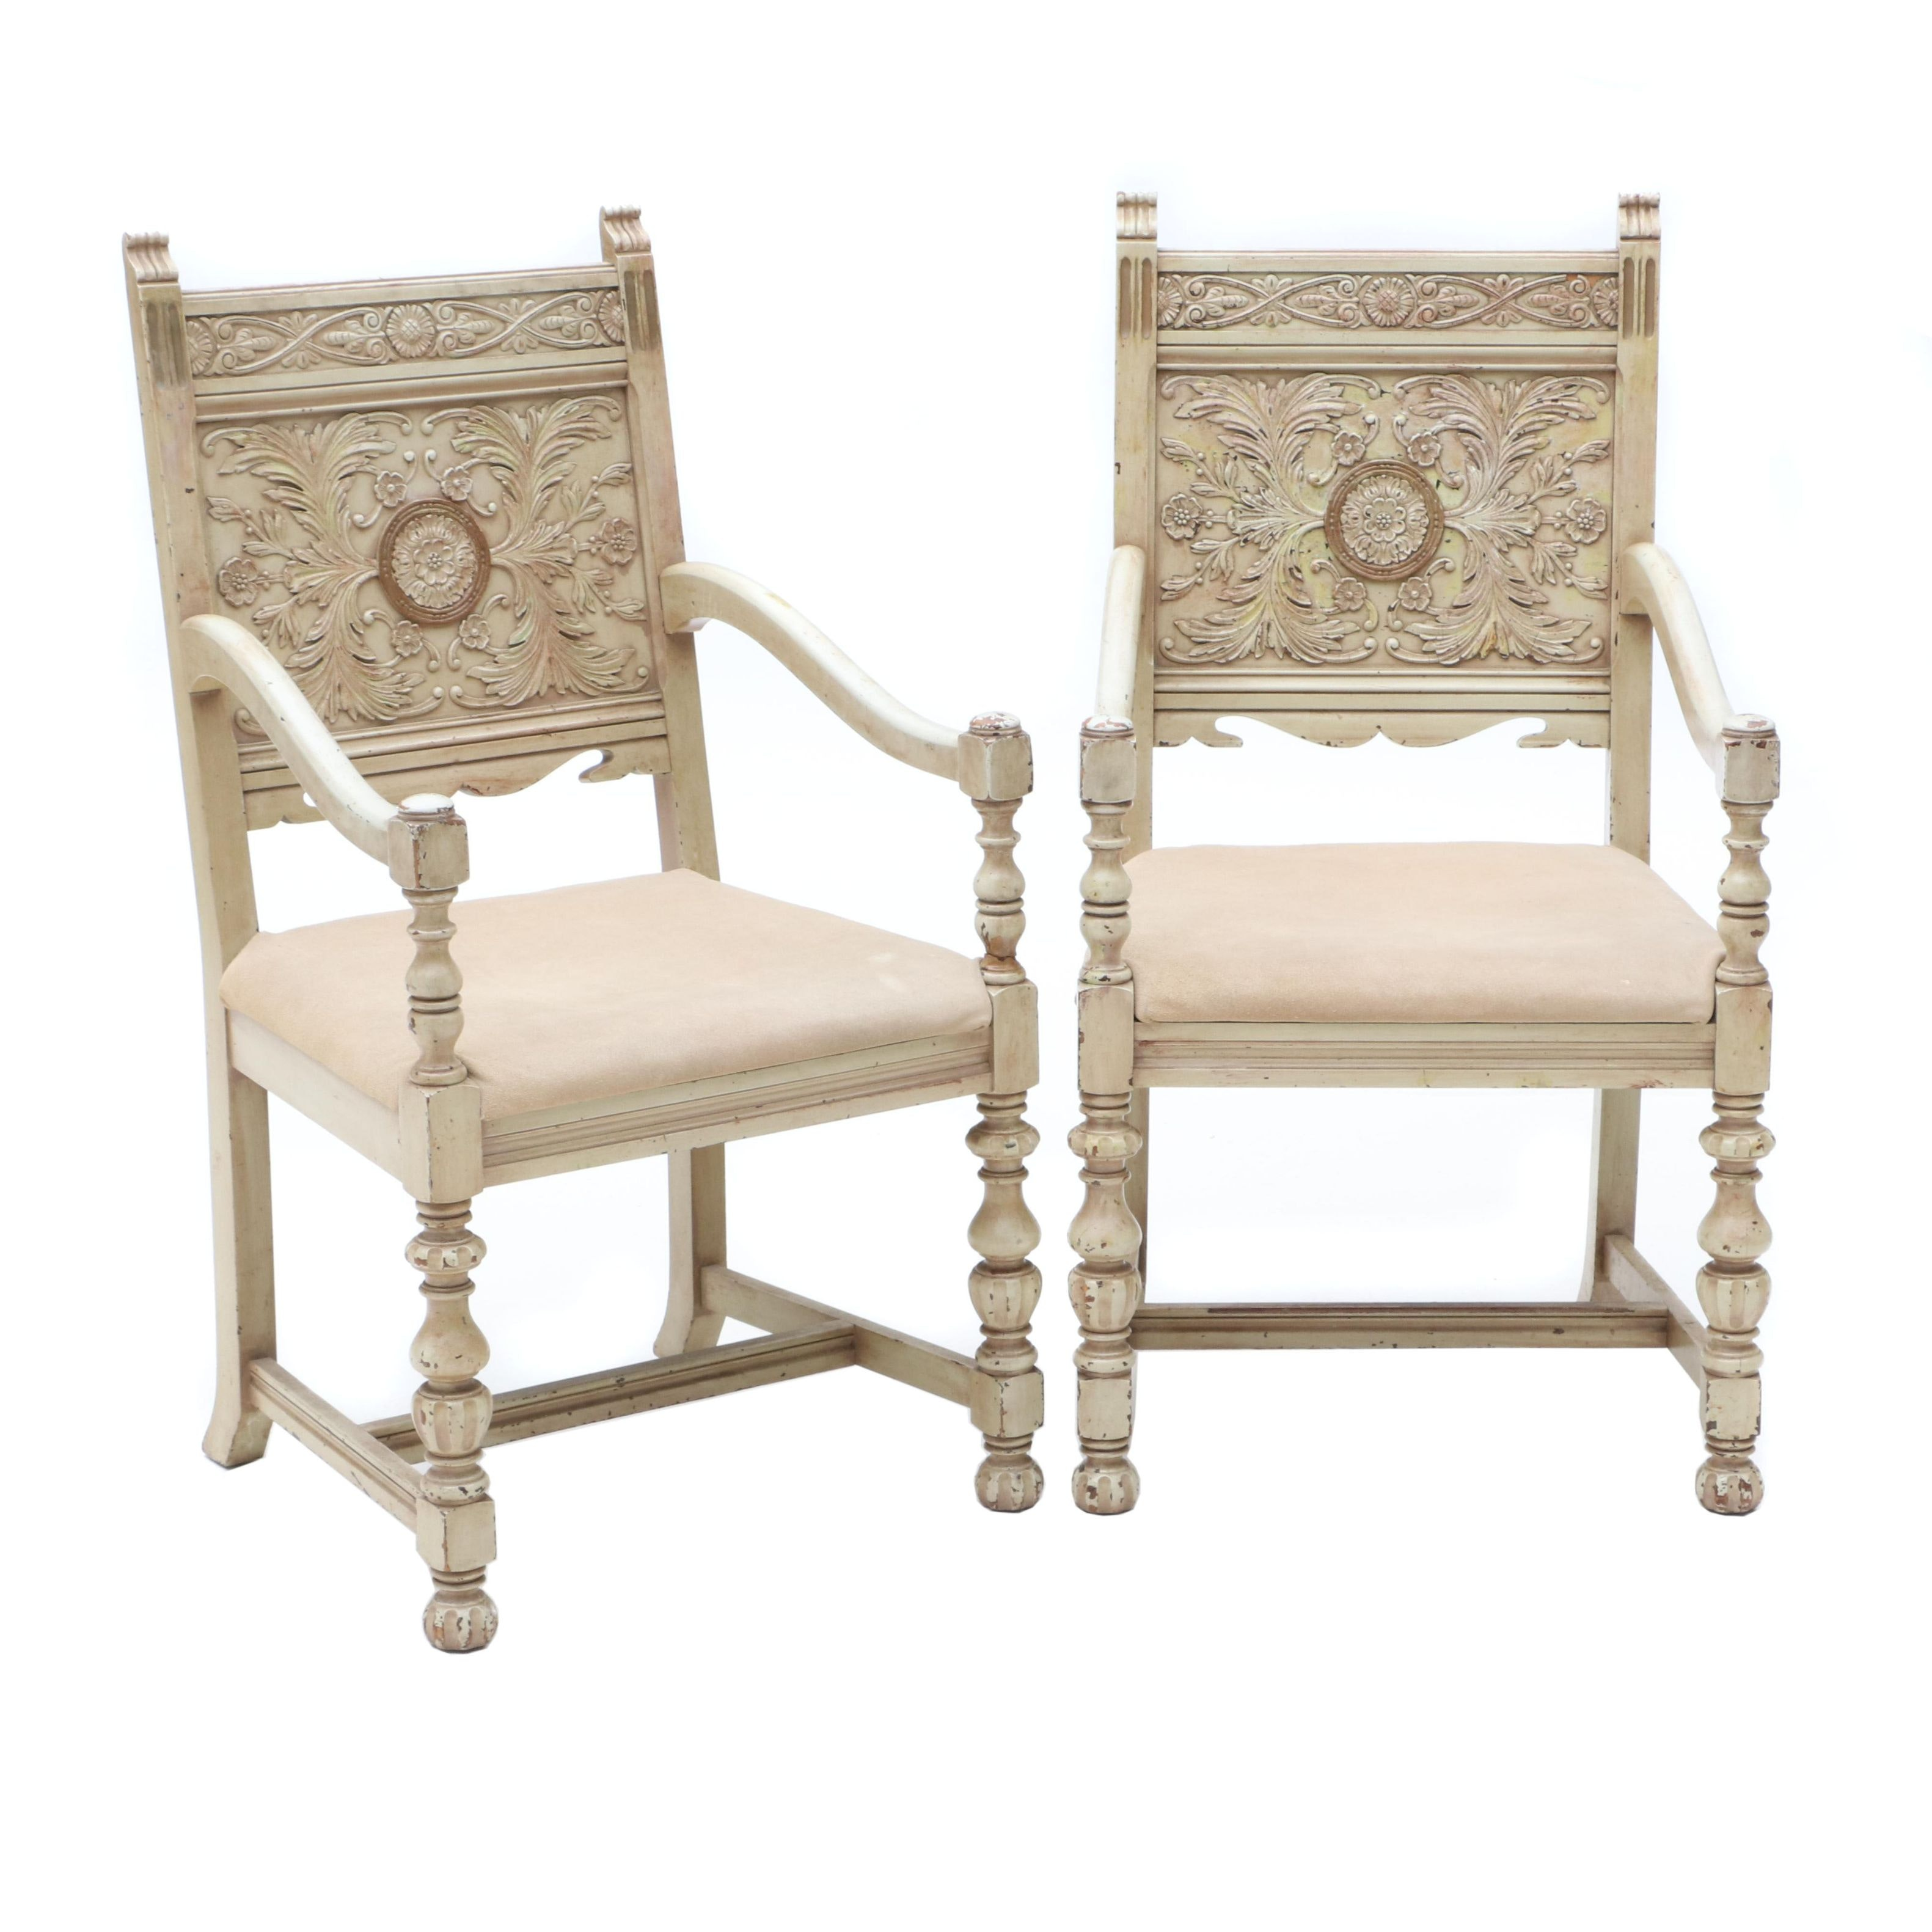 Spanish Revival Chairs Circa 1930s